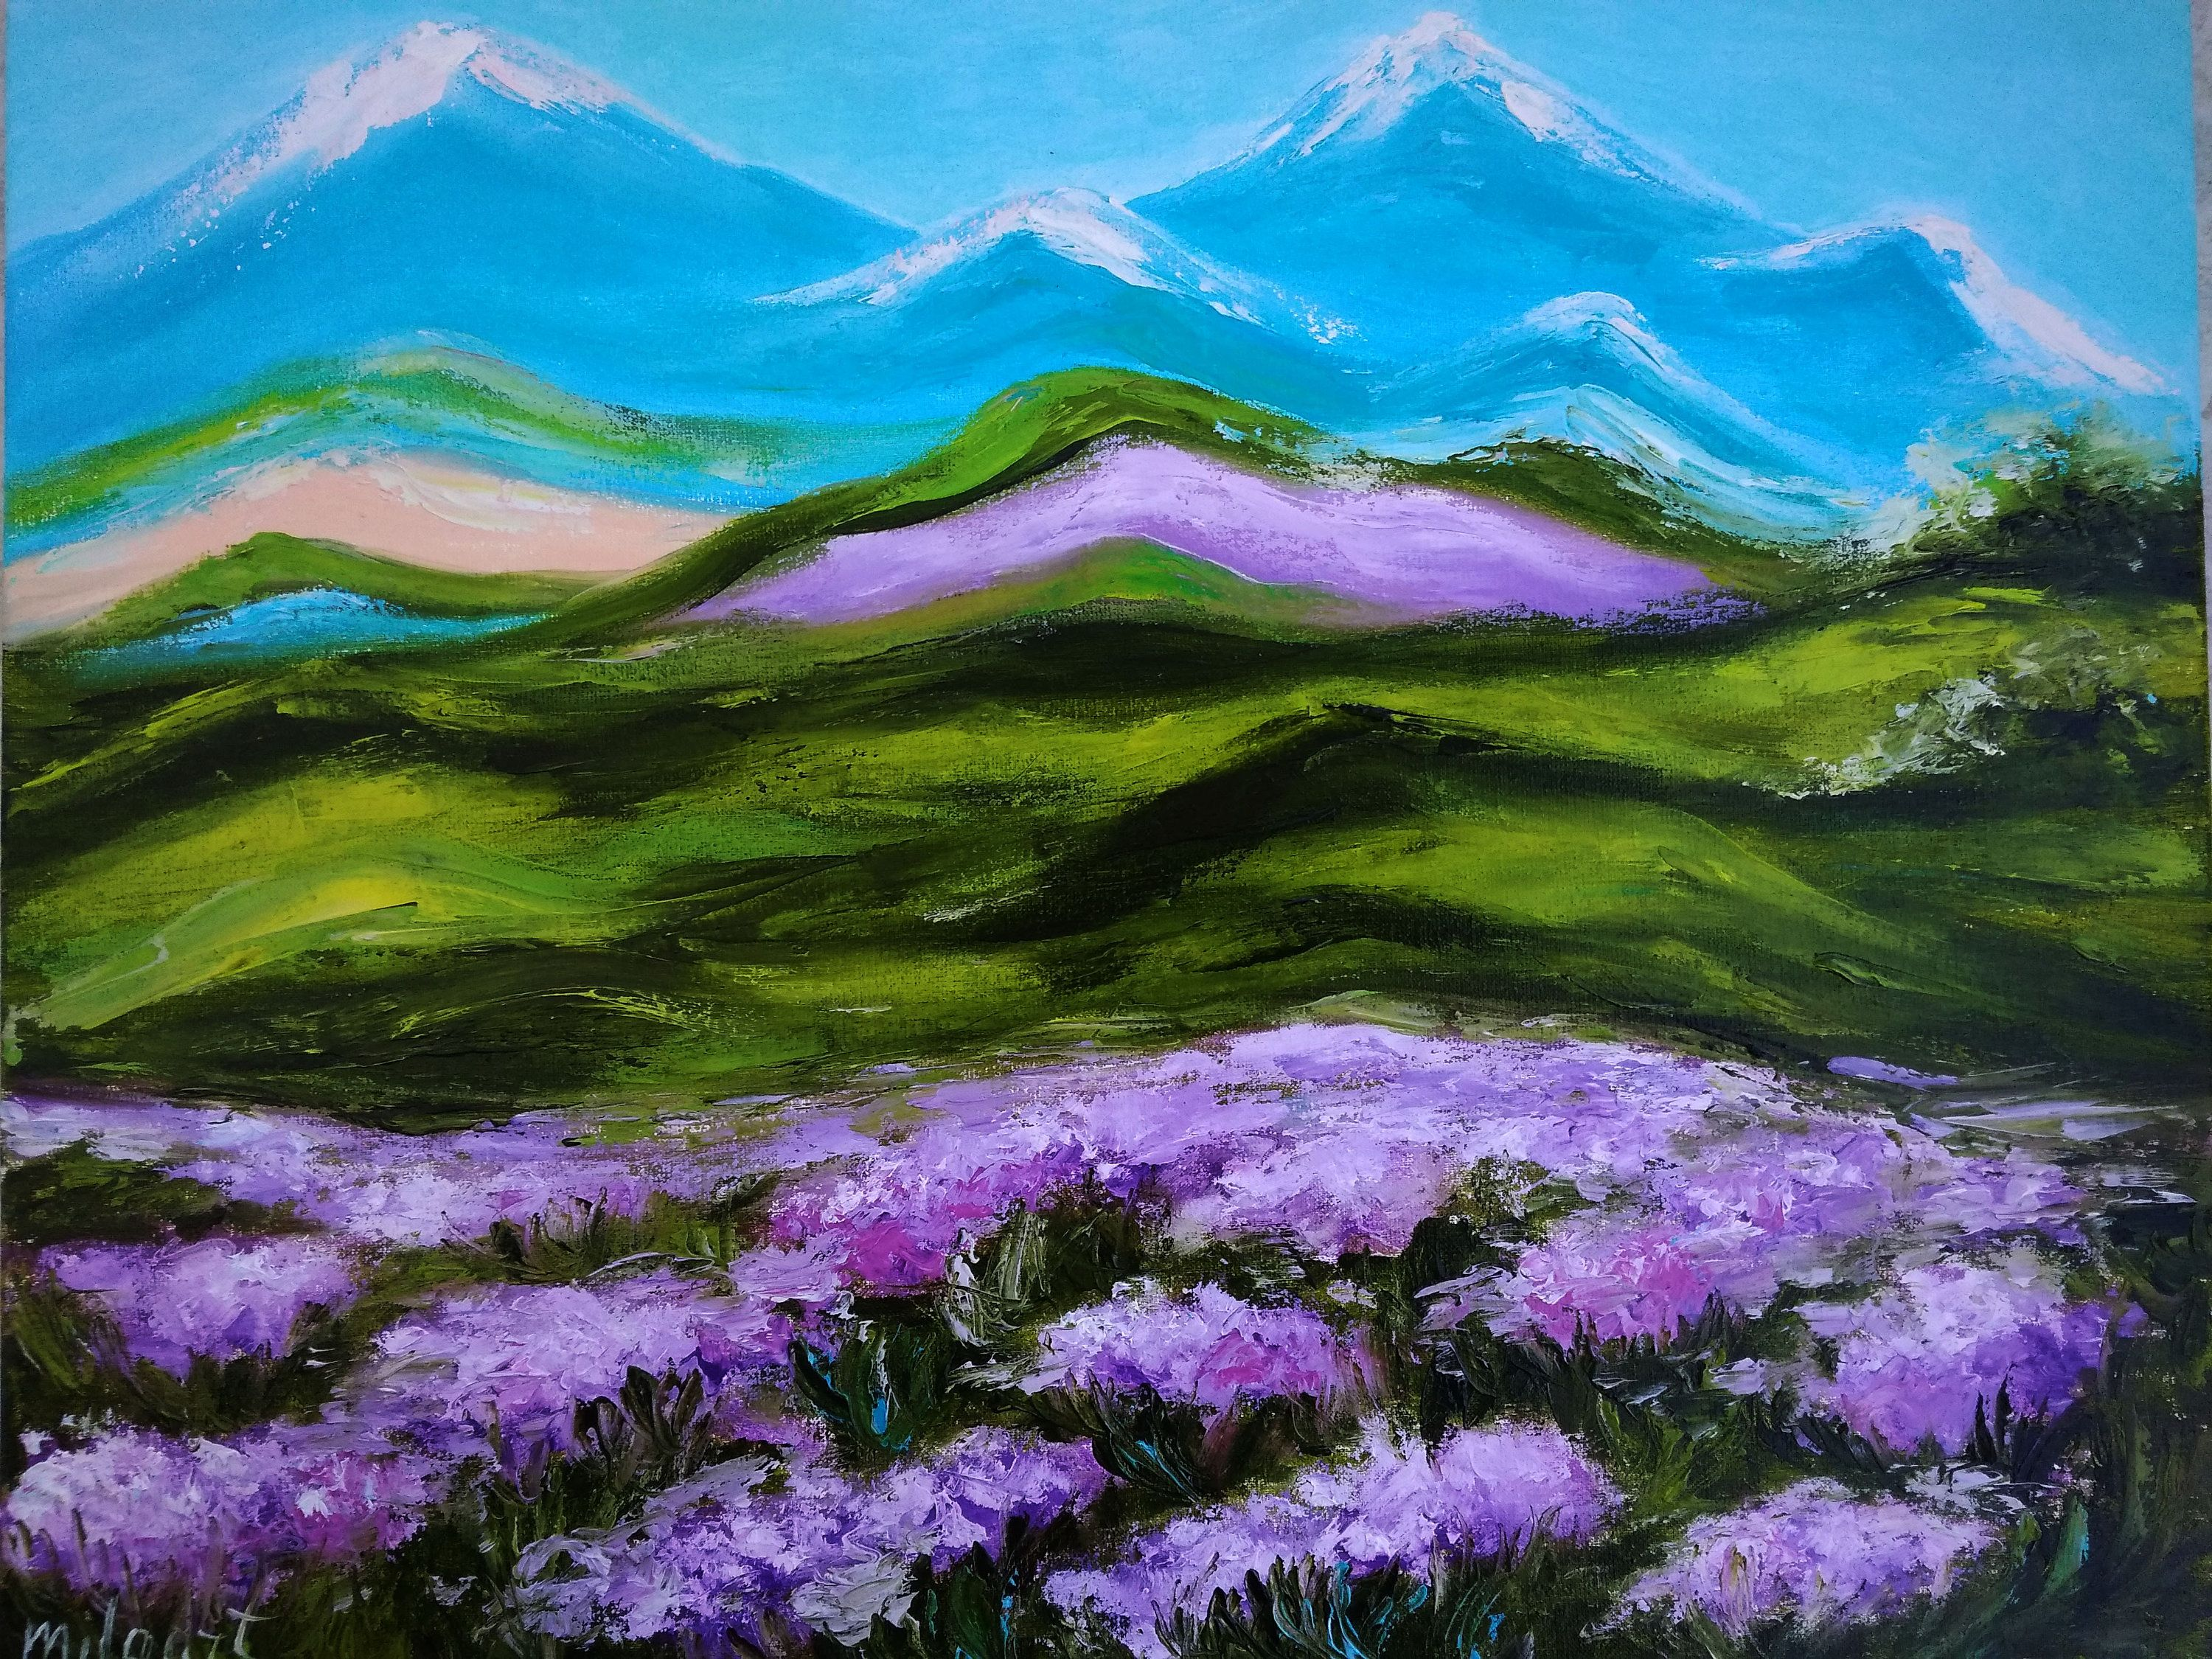 Impasto Landscape Mountain Painting Flowers Field Original Oil Canvas Large Floral Art Tuscany Colorful Landscape Abstract